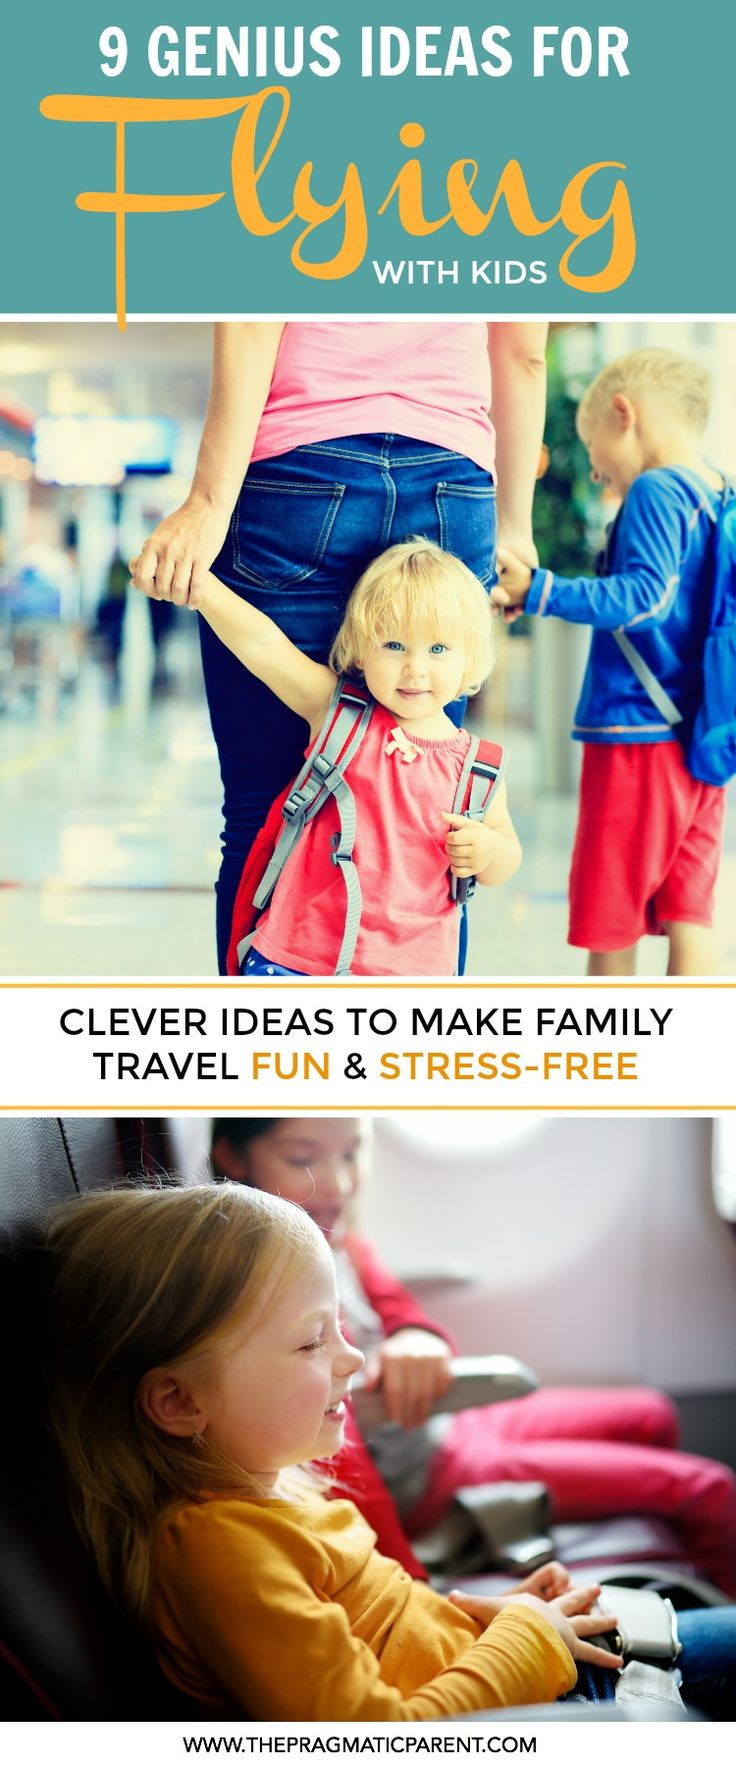 9 Genius Tips to Make Flying with Kids a Breeze. Flying with Kids doesn't have to be stressful, it can be painless and fun if you properly prepare for your flight and bring all the right things. via @https://www.pinterest.com/PragmaticParent/